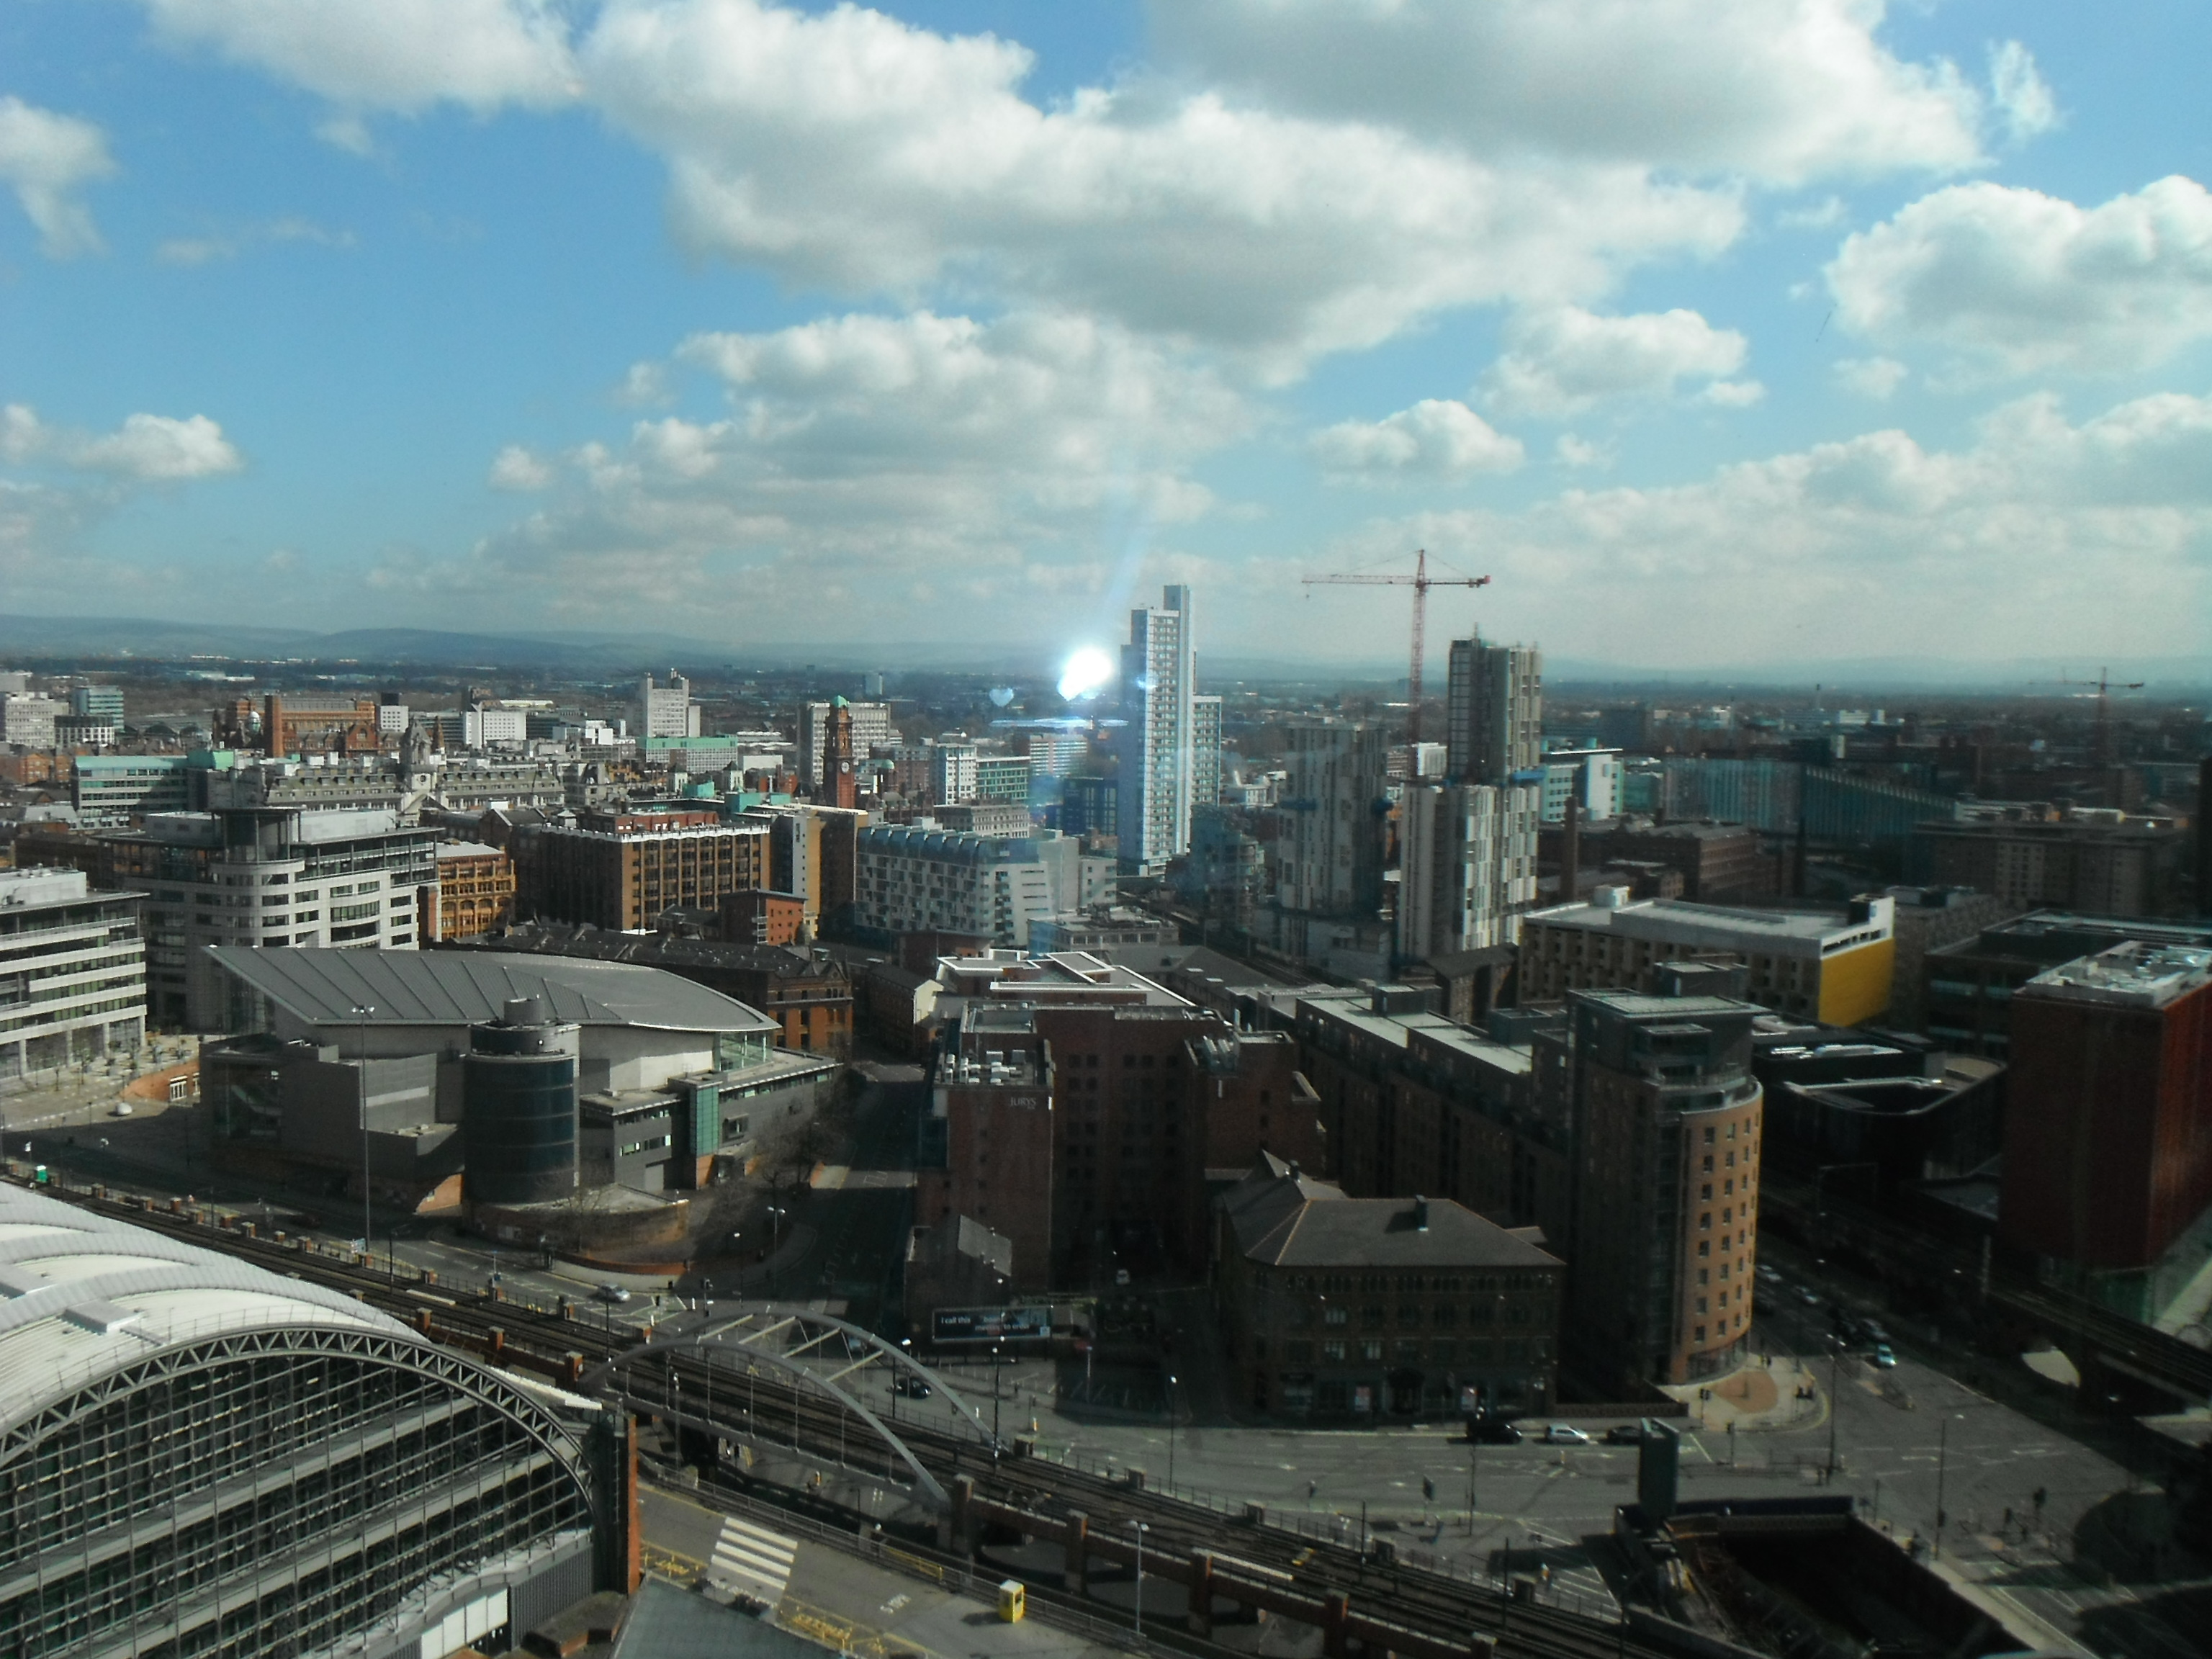 Photo taken by me – The view of Manchester from the Beetham Hotel venue used for the convention.